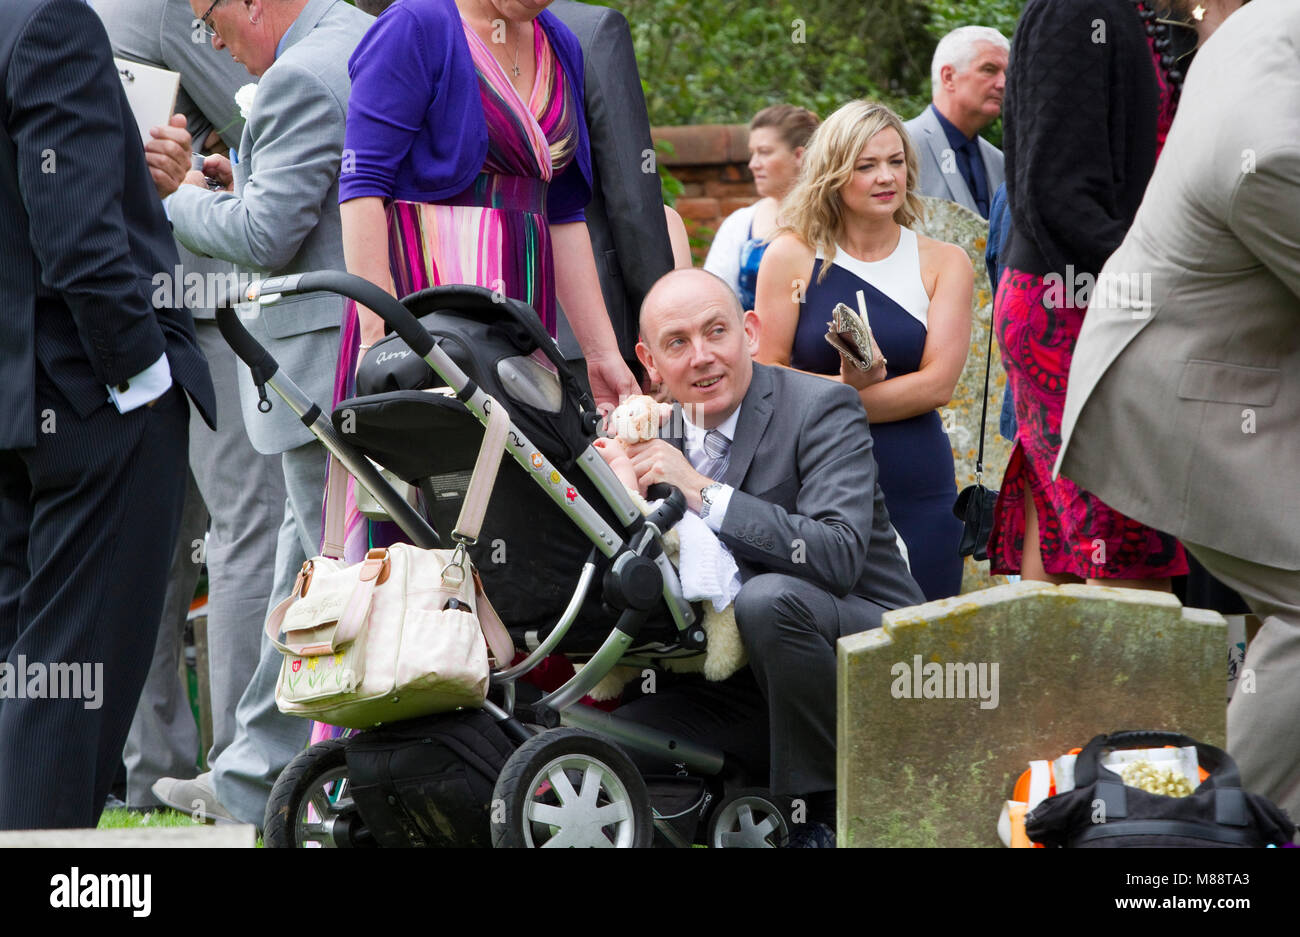 At a wedding a middle aged man squats to entertain a baby in a buggy - Stock Image